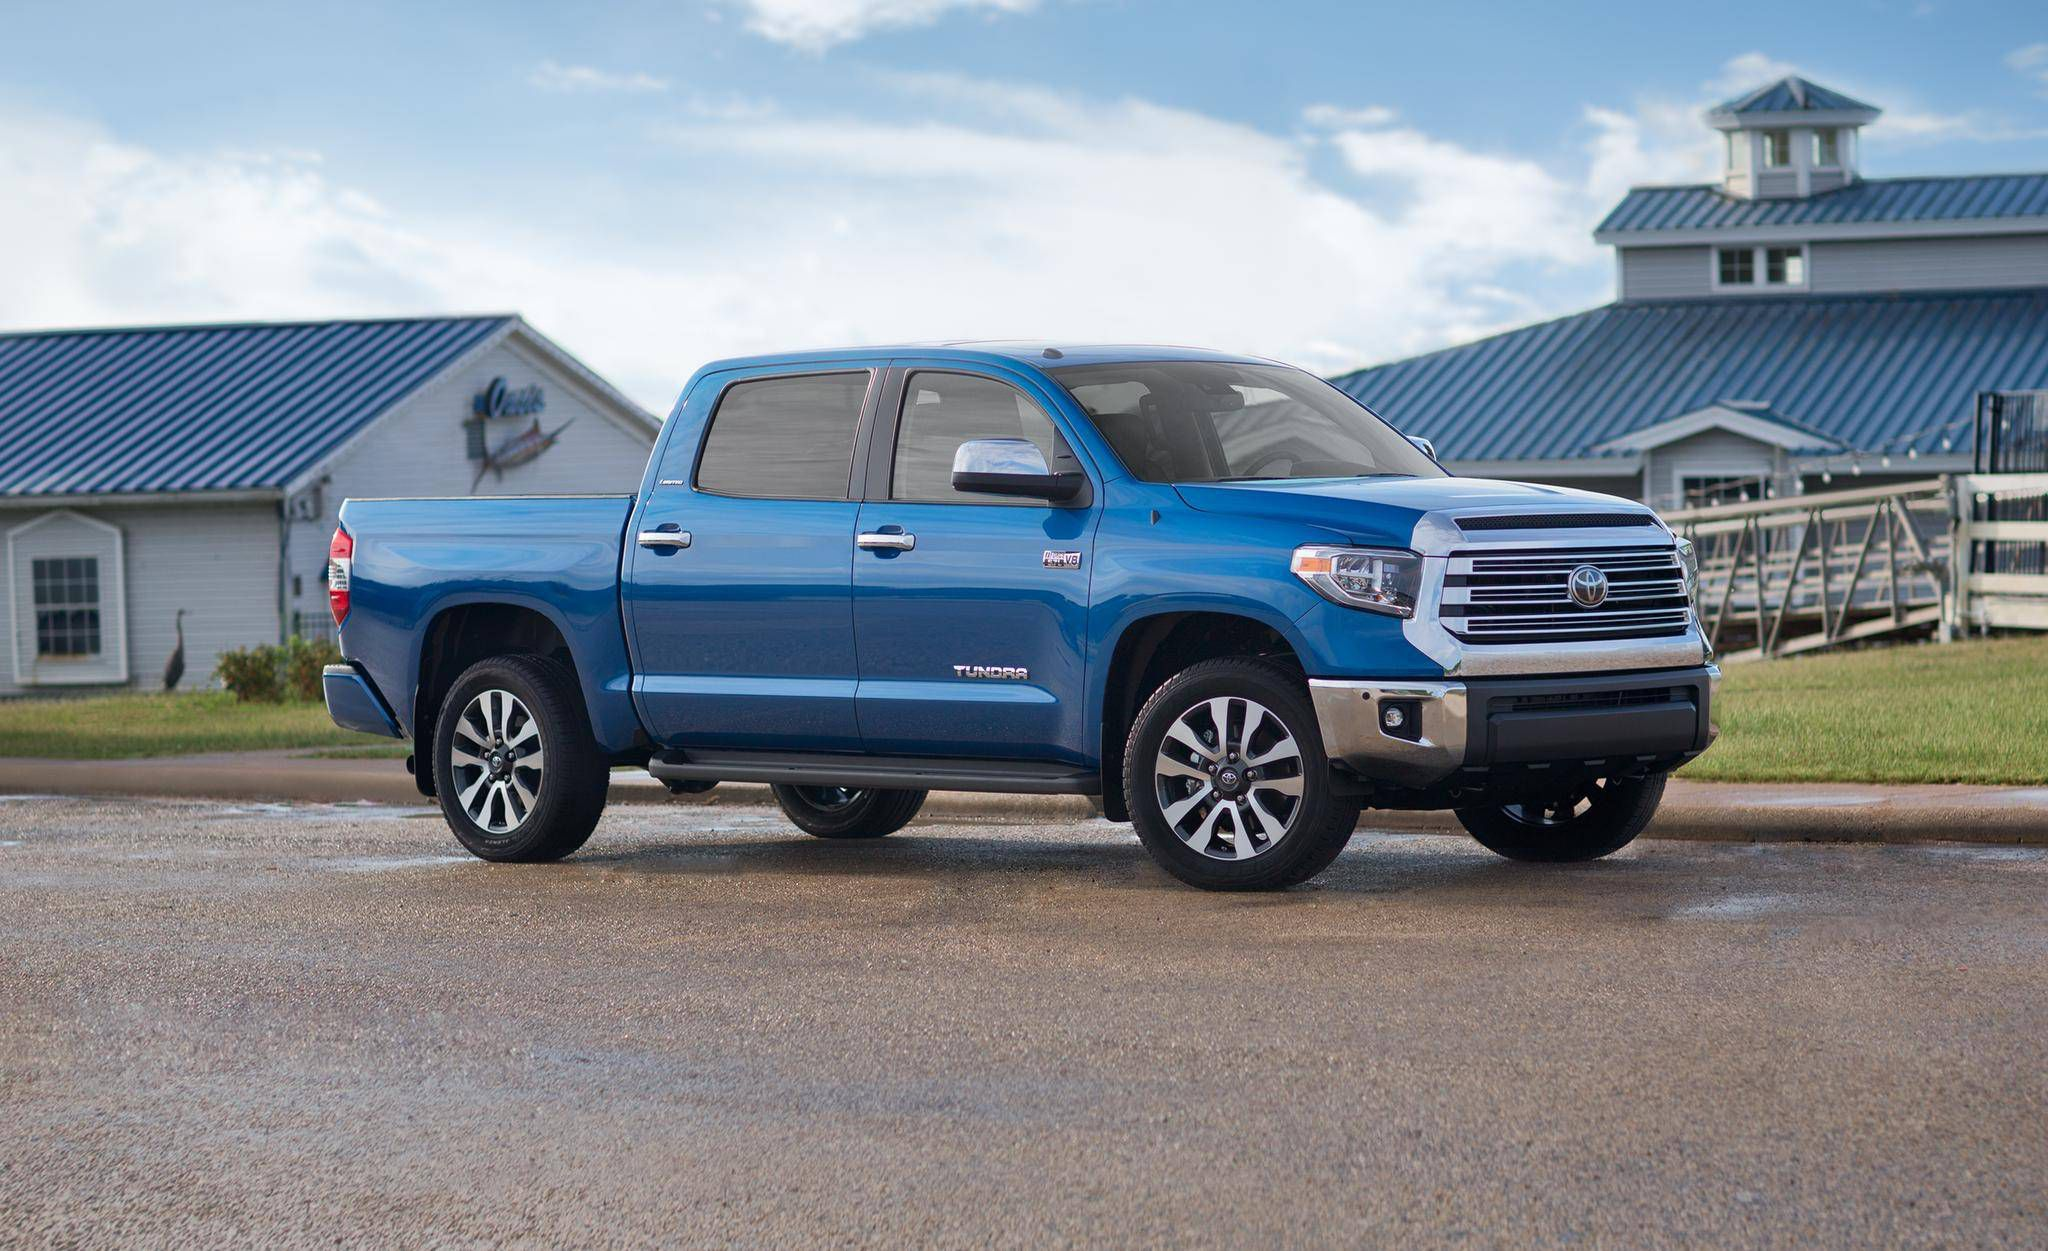 Most Reliable Truck Ever >> The Best Offers From The Most Reliable Auto Makers The